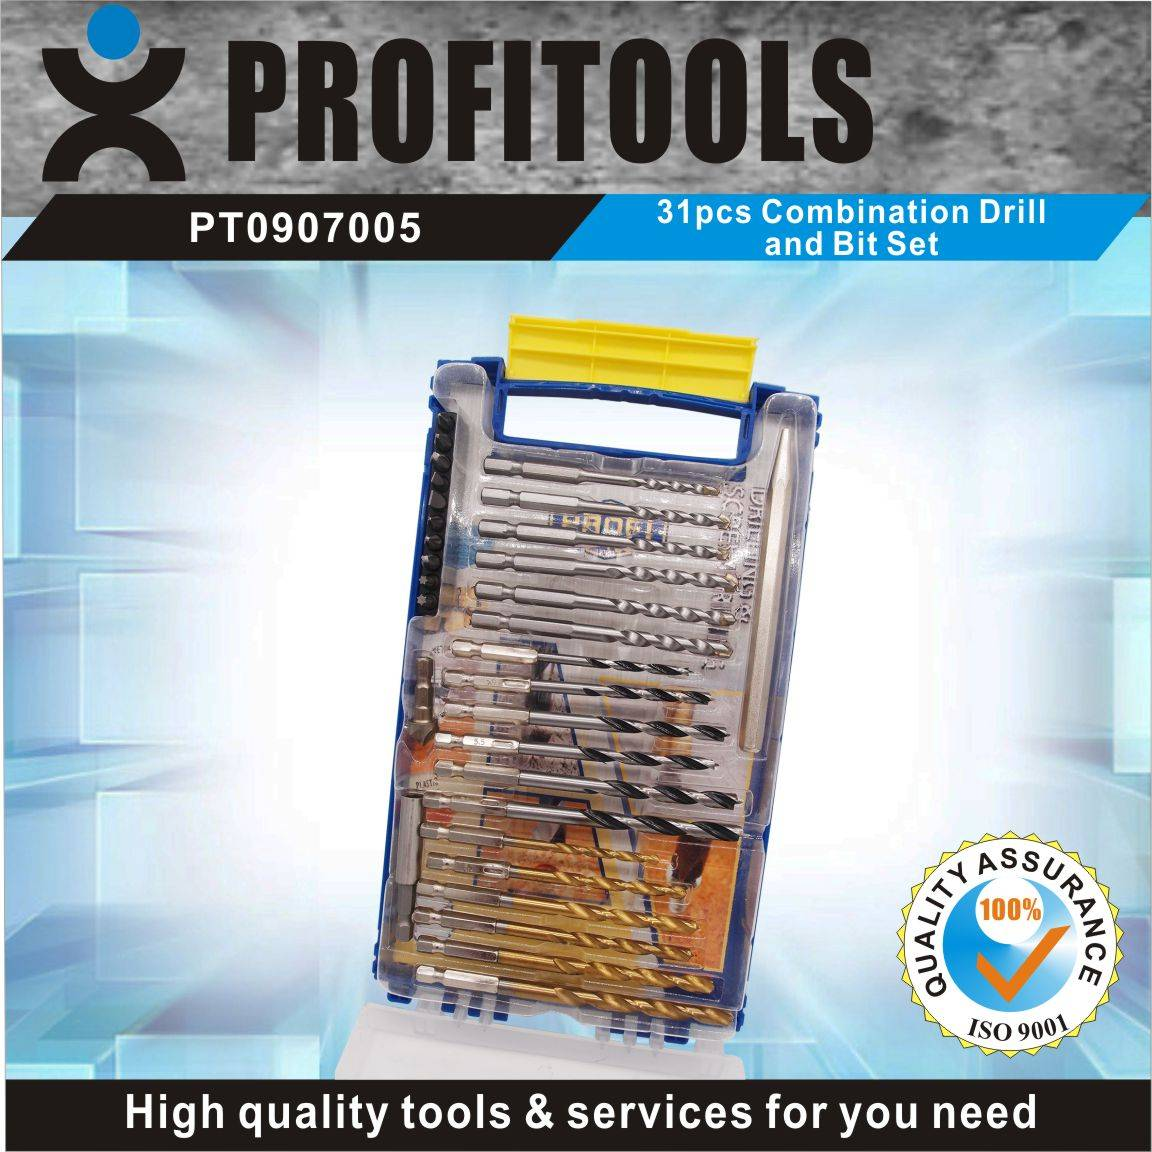 31pcs Quick Change Combination Drill and Bit Set